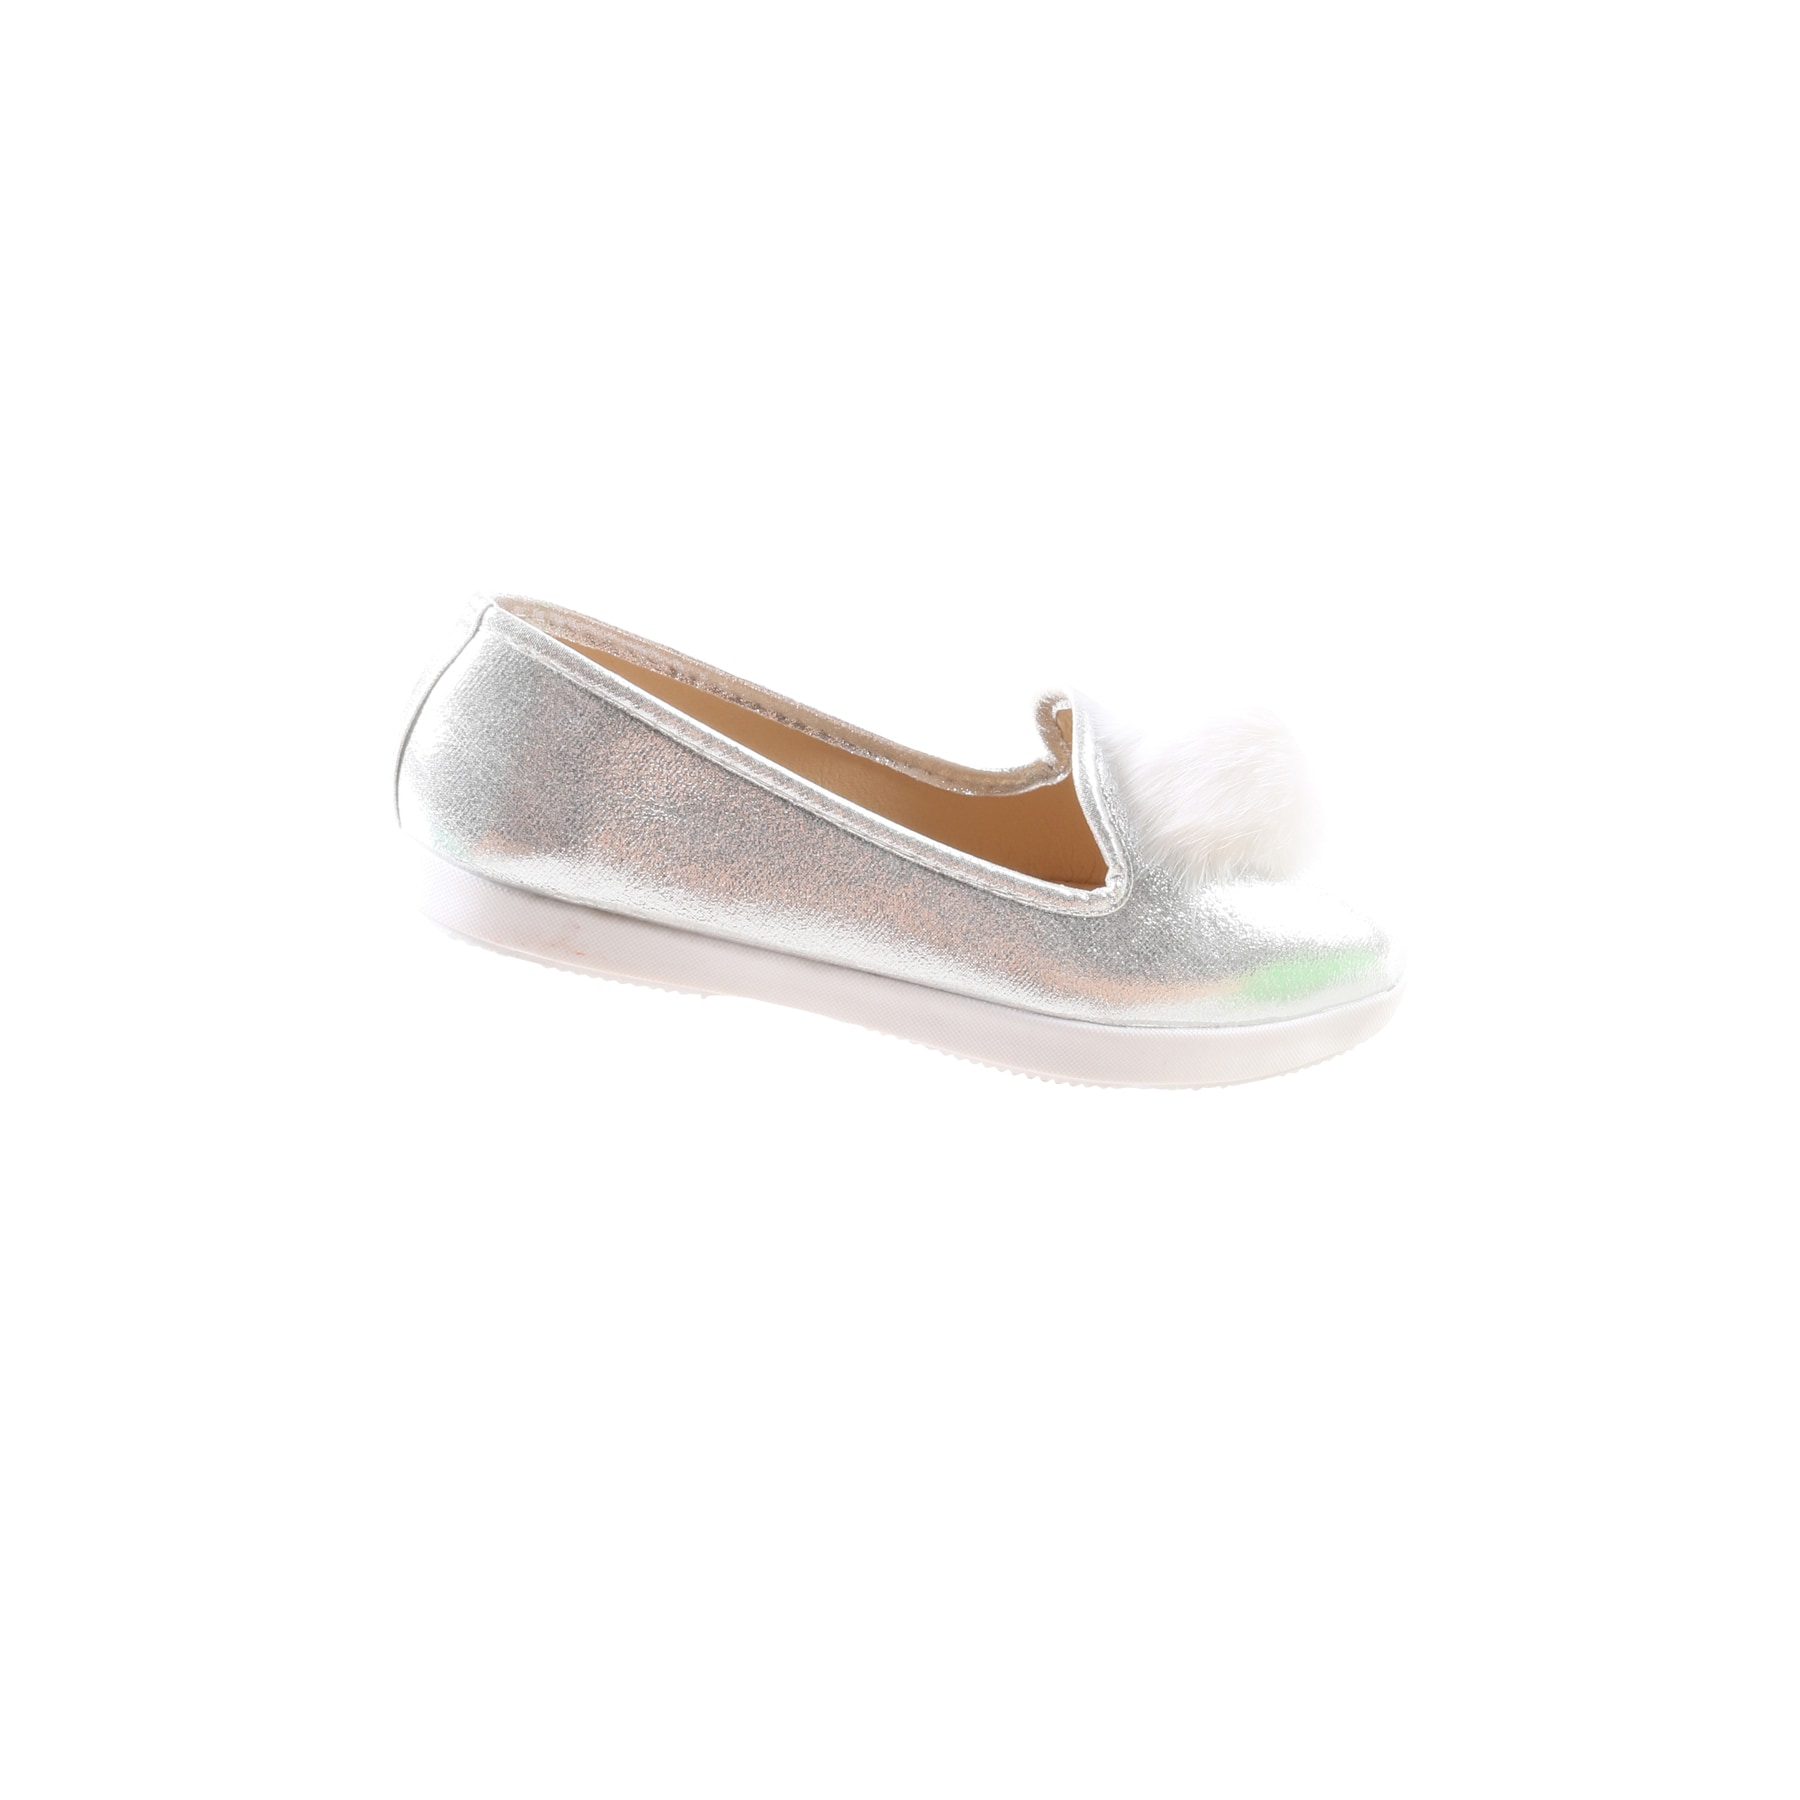 fe1bdc0f7 Shop Hadari Women's Casual Fashion Slip On Silver Pom Pom Flat Shoes - Free  Shipping On Orders Over $45 - Overstock - 13490764